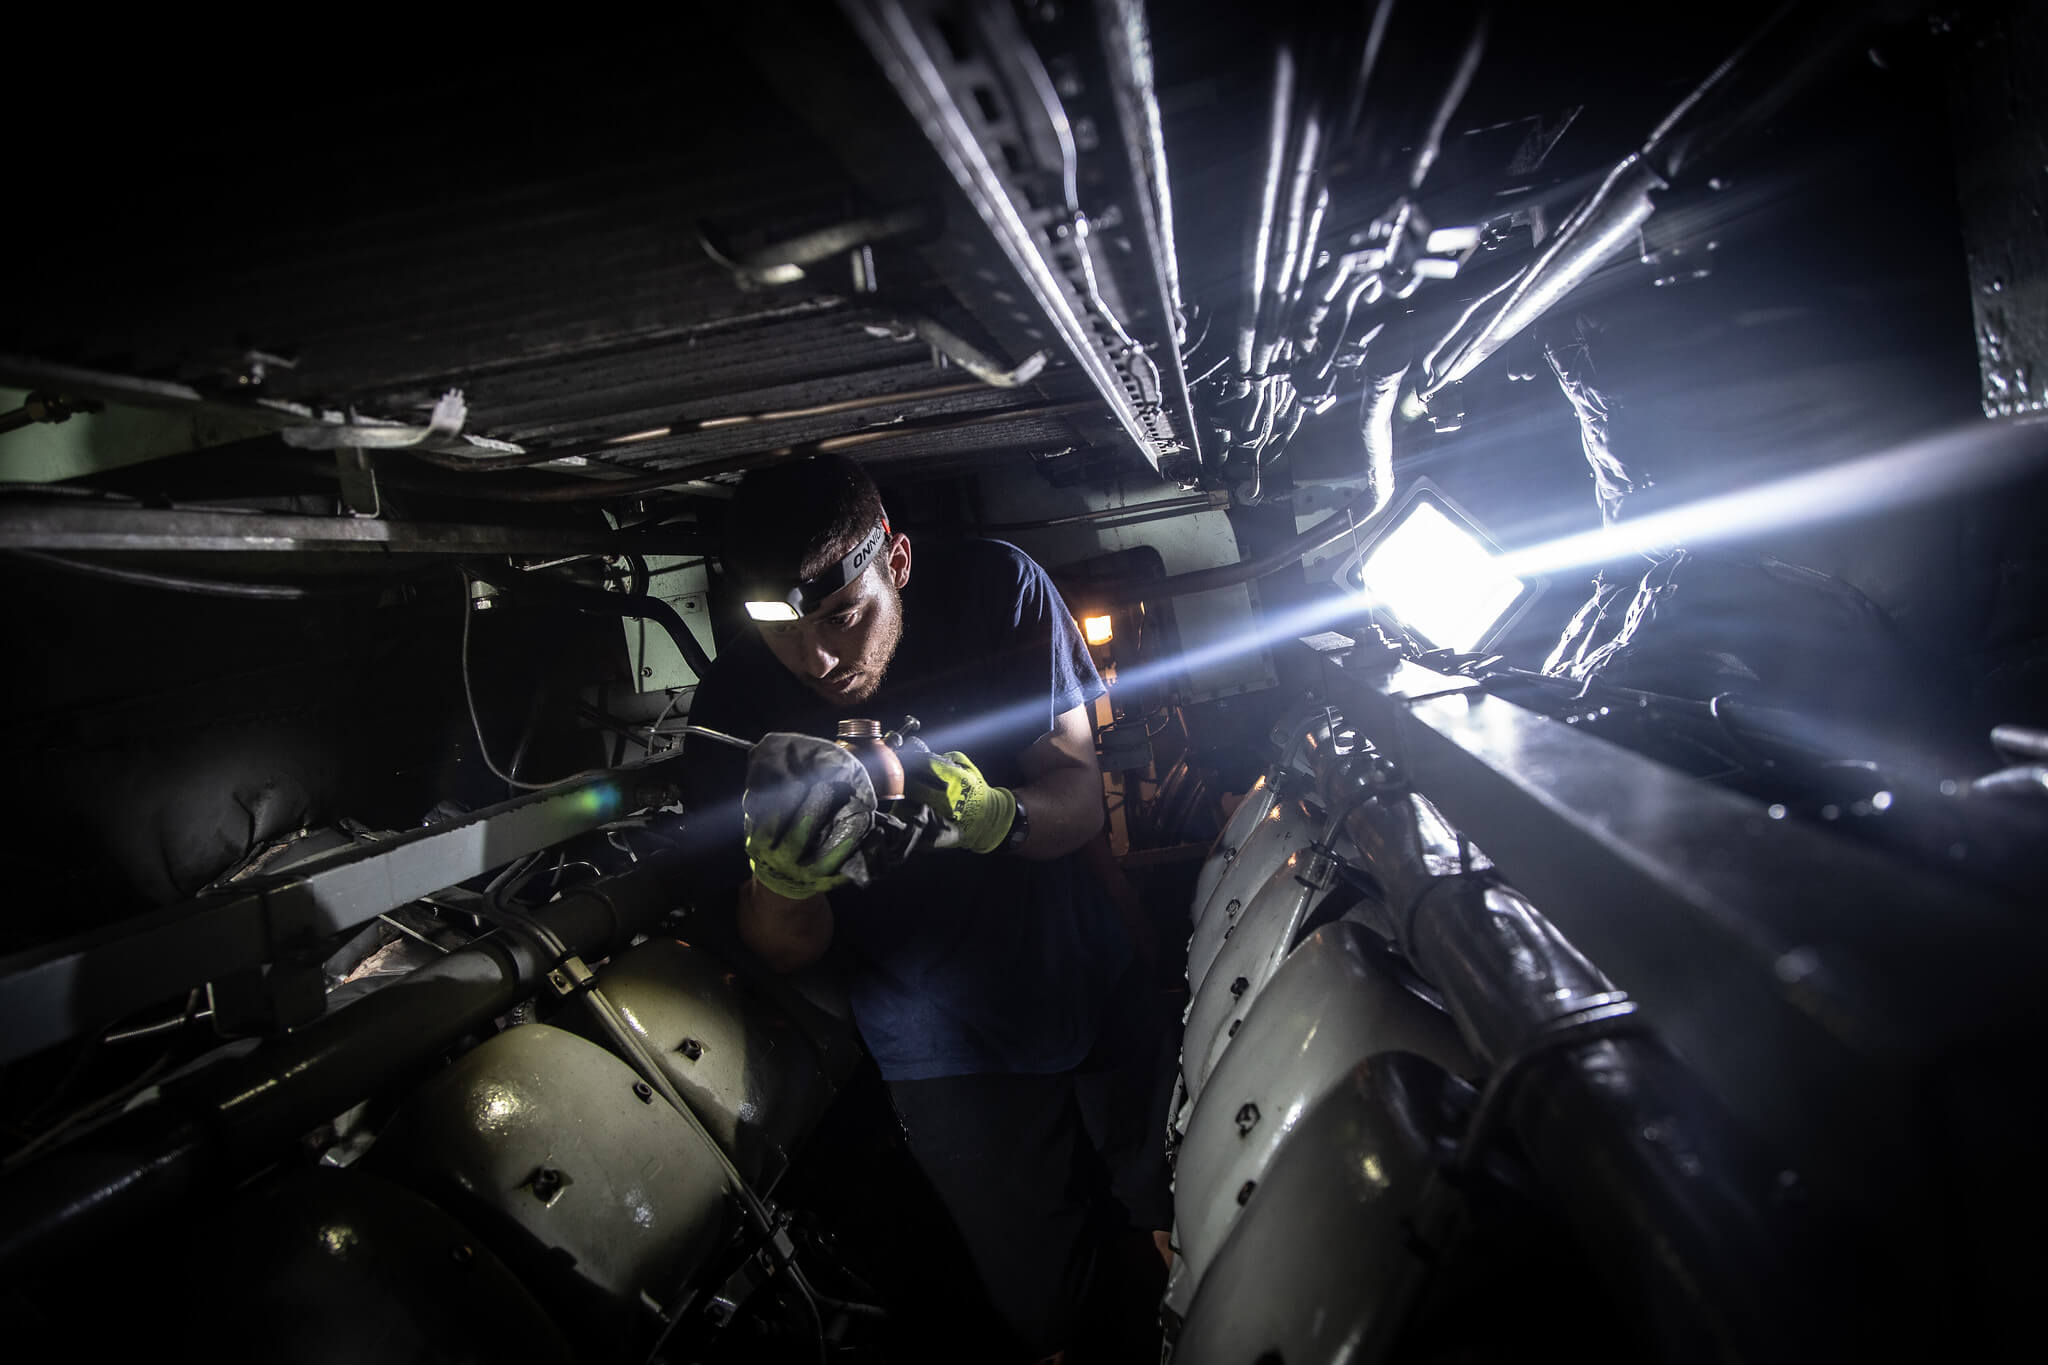 A seaman works in the engine room of a Spanish submarine during the NATO exercise Dynamic Mariner, 2019. © NATO / Flickr